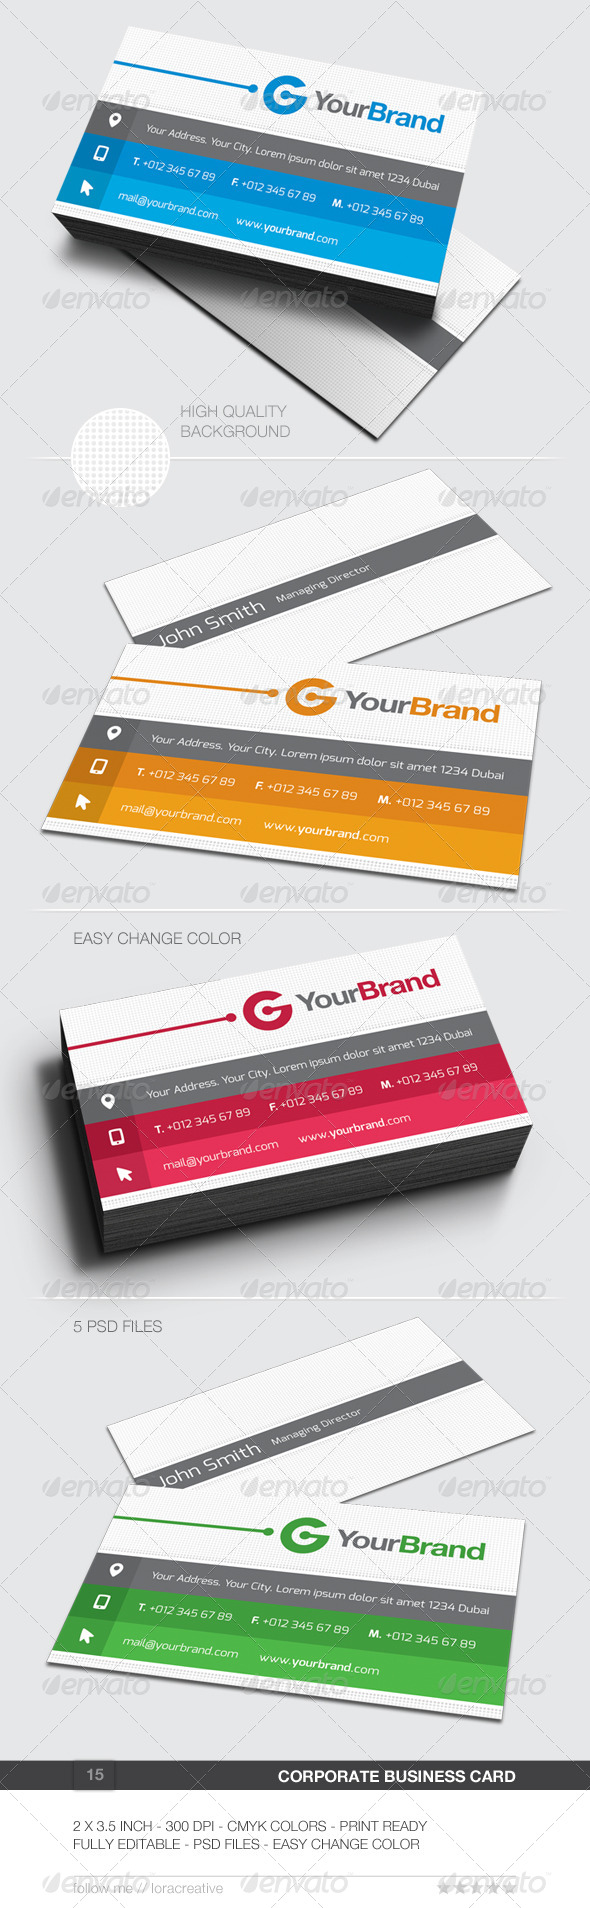 GraphicRiver Corporate Business Card 15 6201980